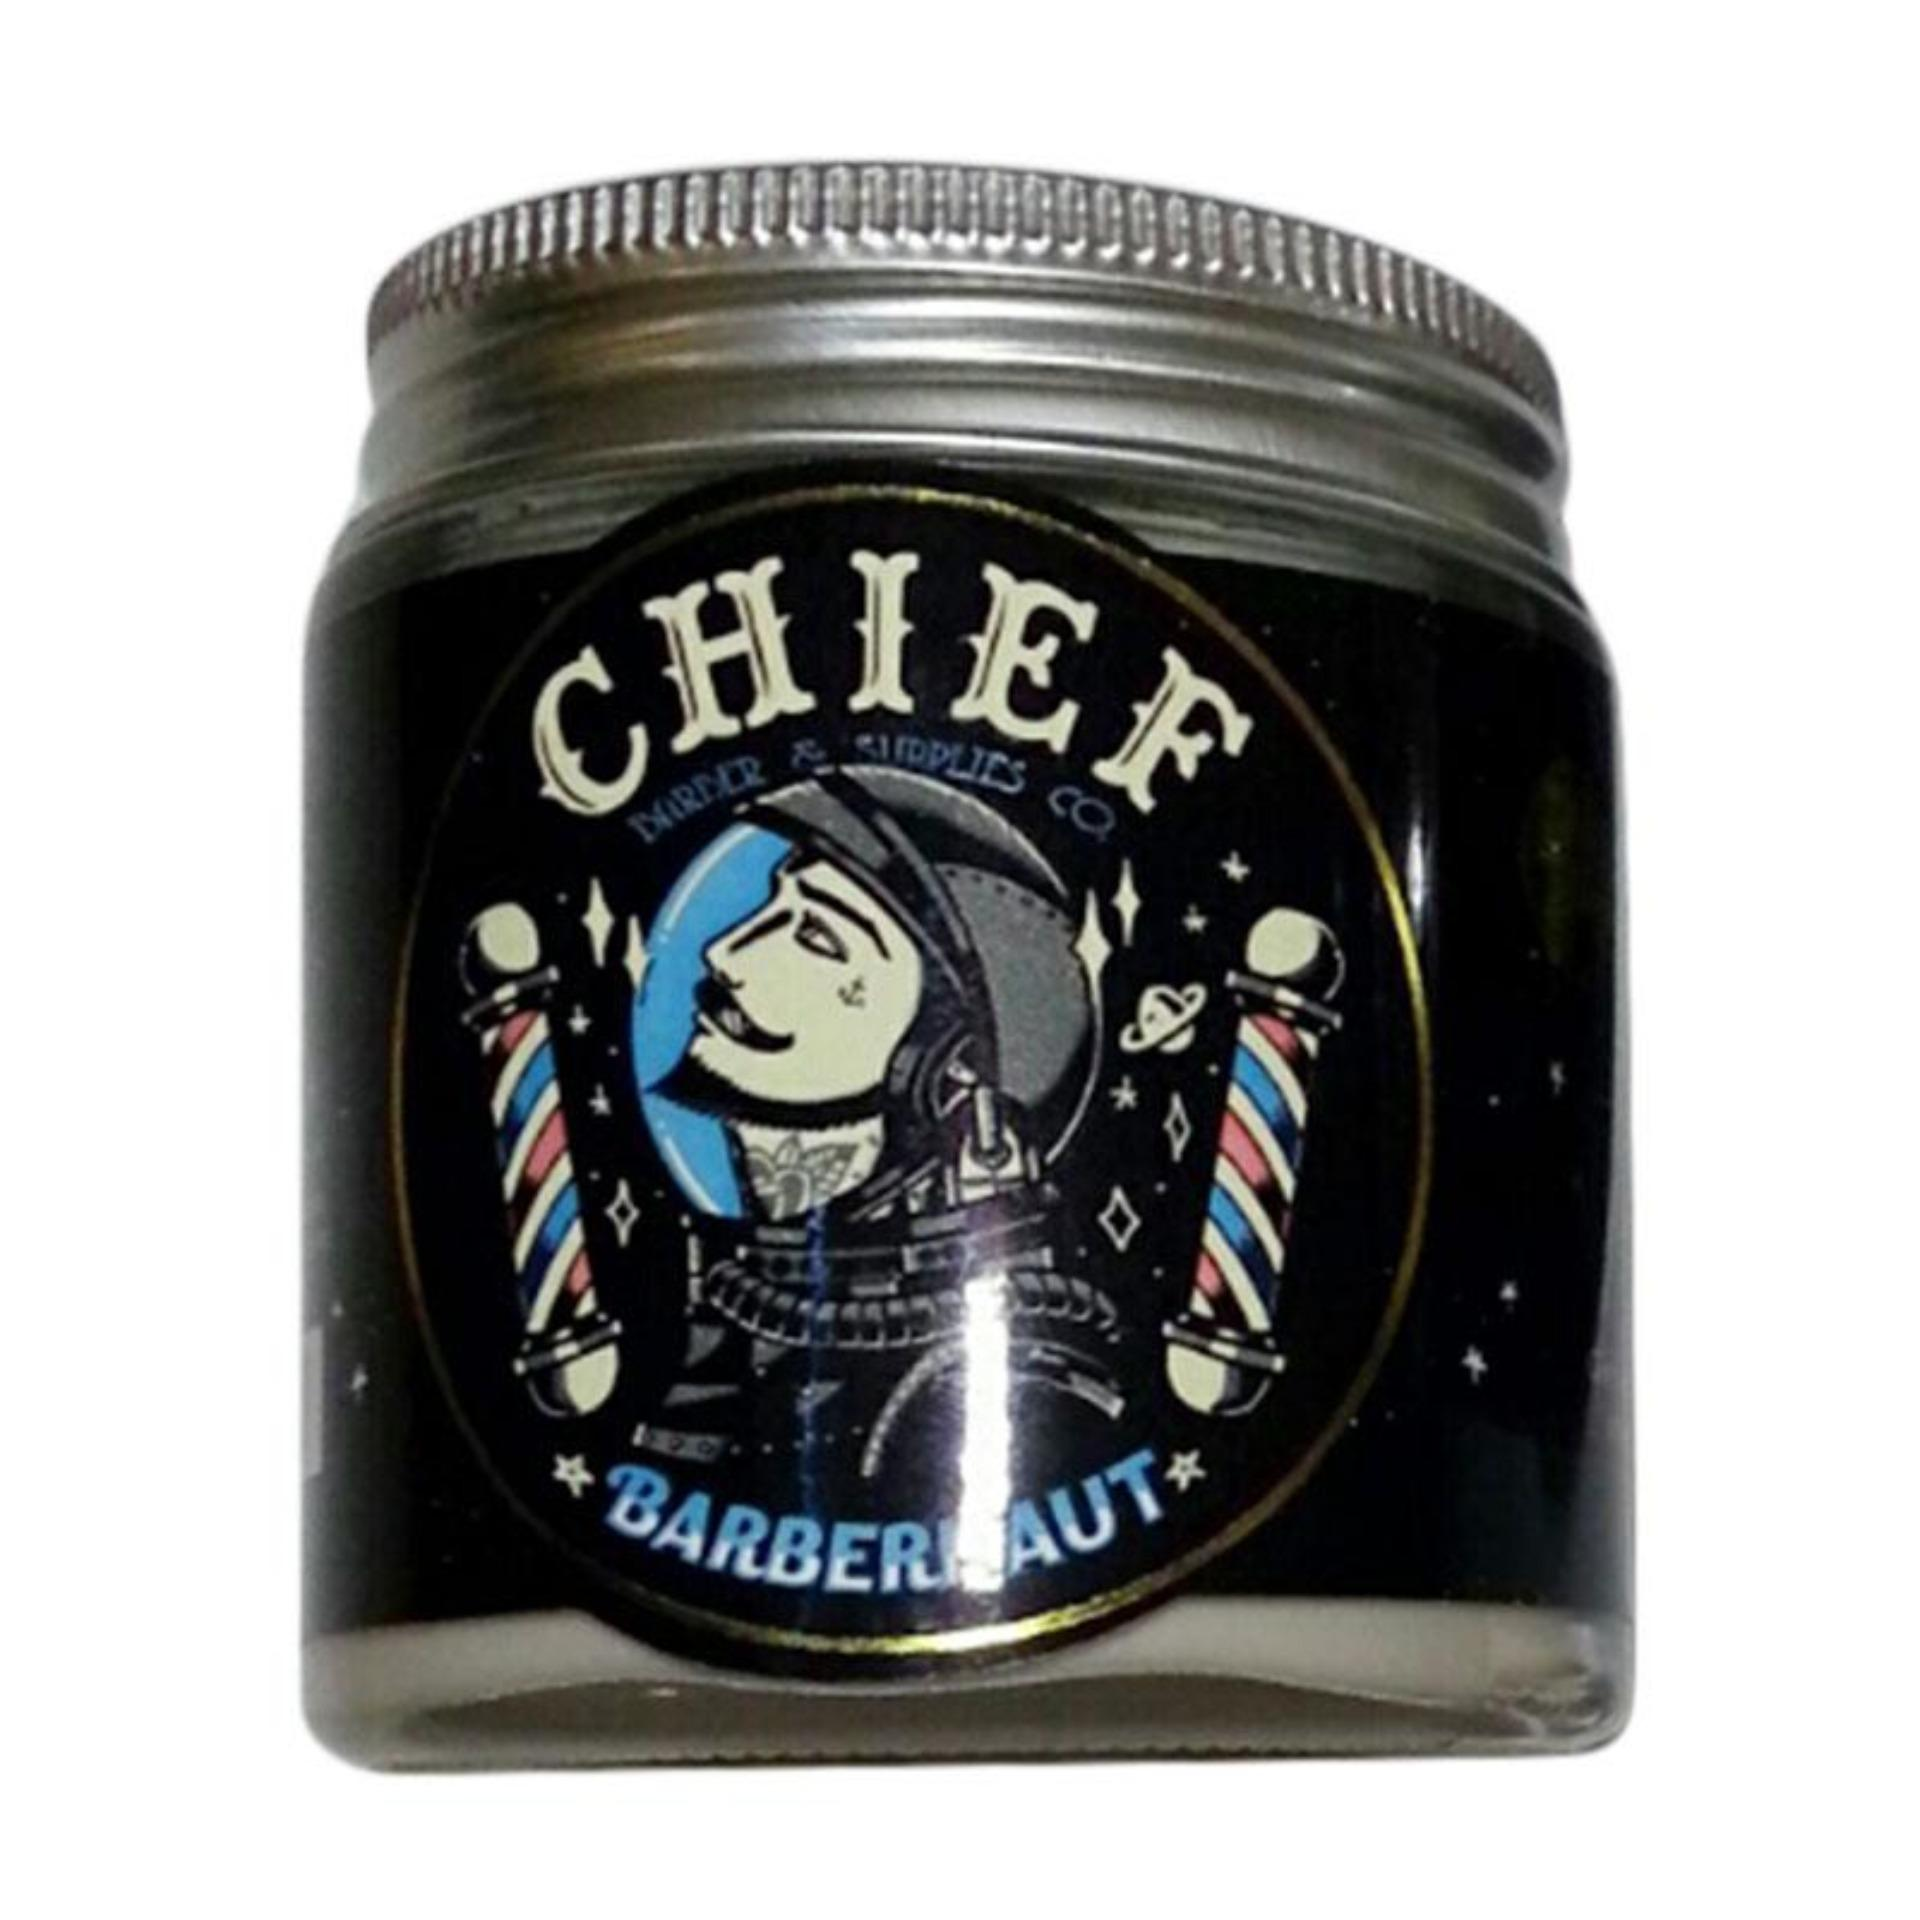 TERMURAH..! POMADE CHIEF BARBERNAUT SPACE CLAY STRONG HOLD 4.2 OZ Terlaris